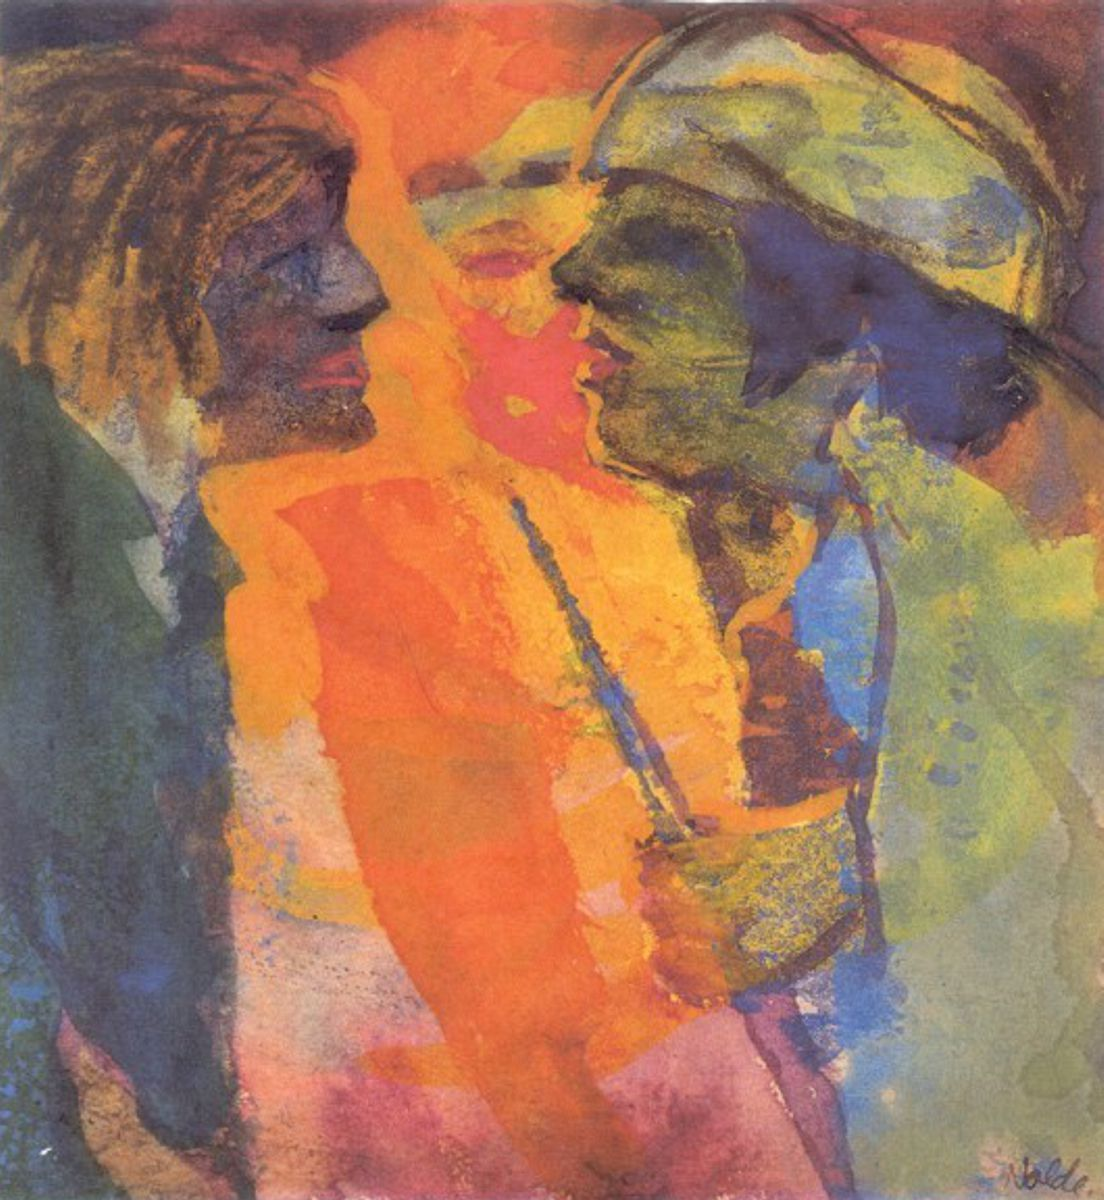 """Emil Nolde, Streitgespräch, 1938/45, Aquarell. The lushly colored paintings reveal the complexity of Nolde's lifeworld. What they all share is the emotional power of color.  Nolde was convinced: """"Colors were a joy to me, and I felt as if they loved my hands."""" His colorful paintings and watercolors testify to his affinity with nature and his search for primal human states"""